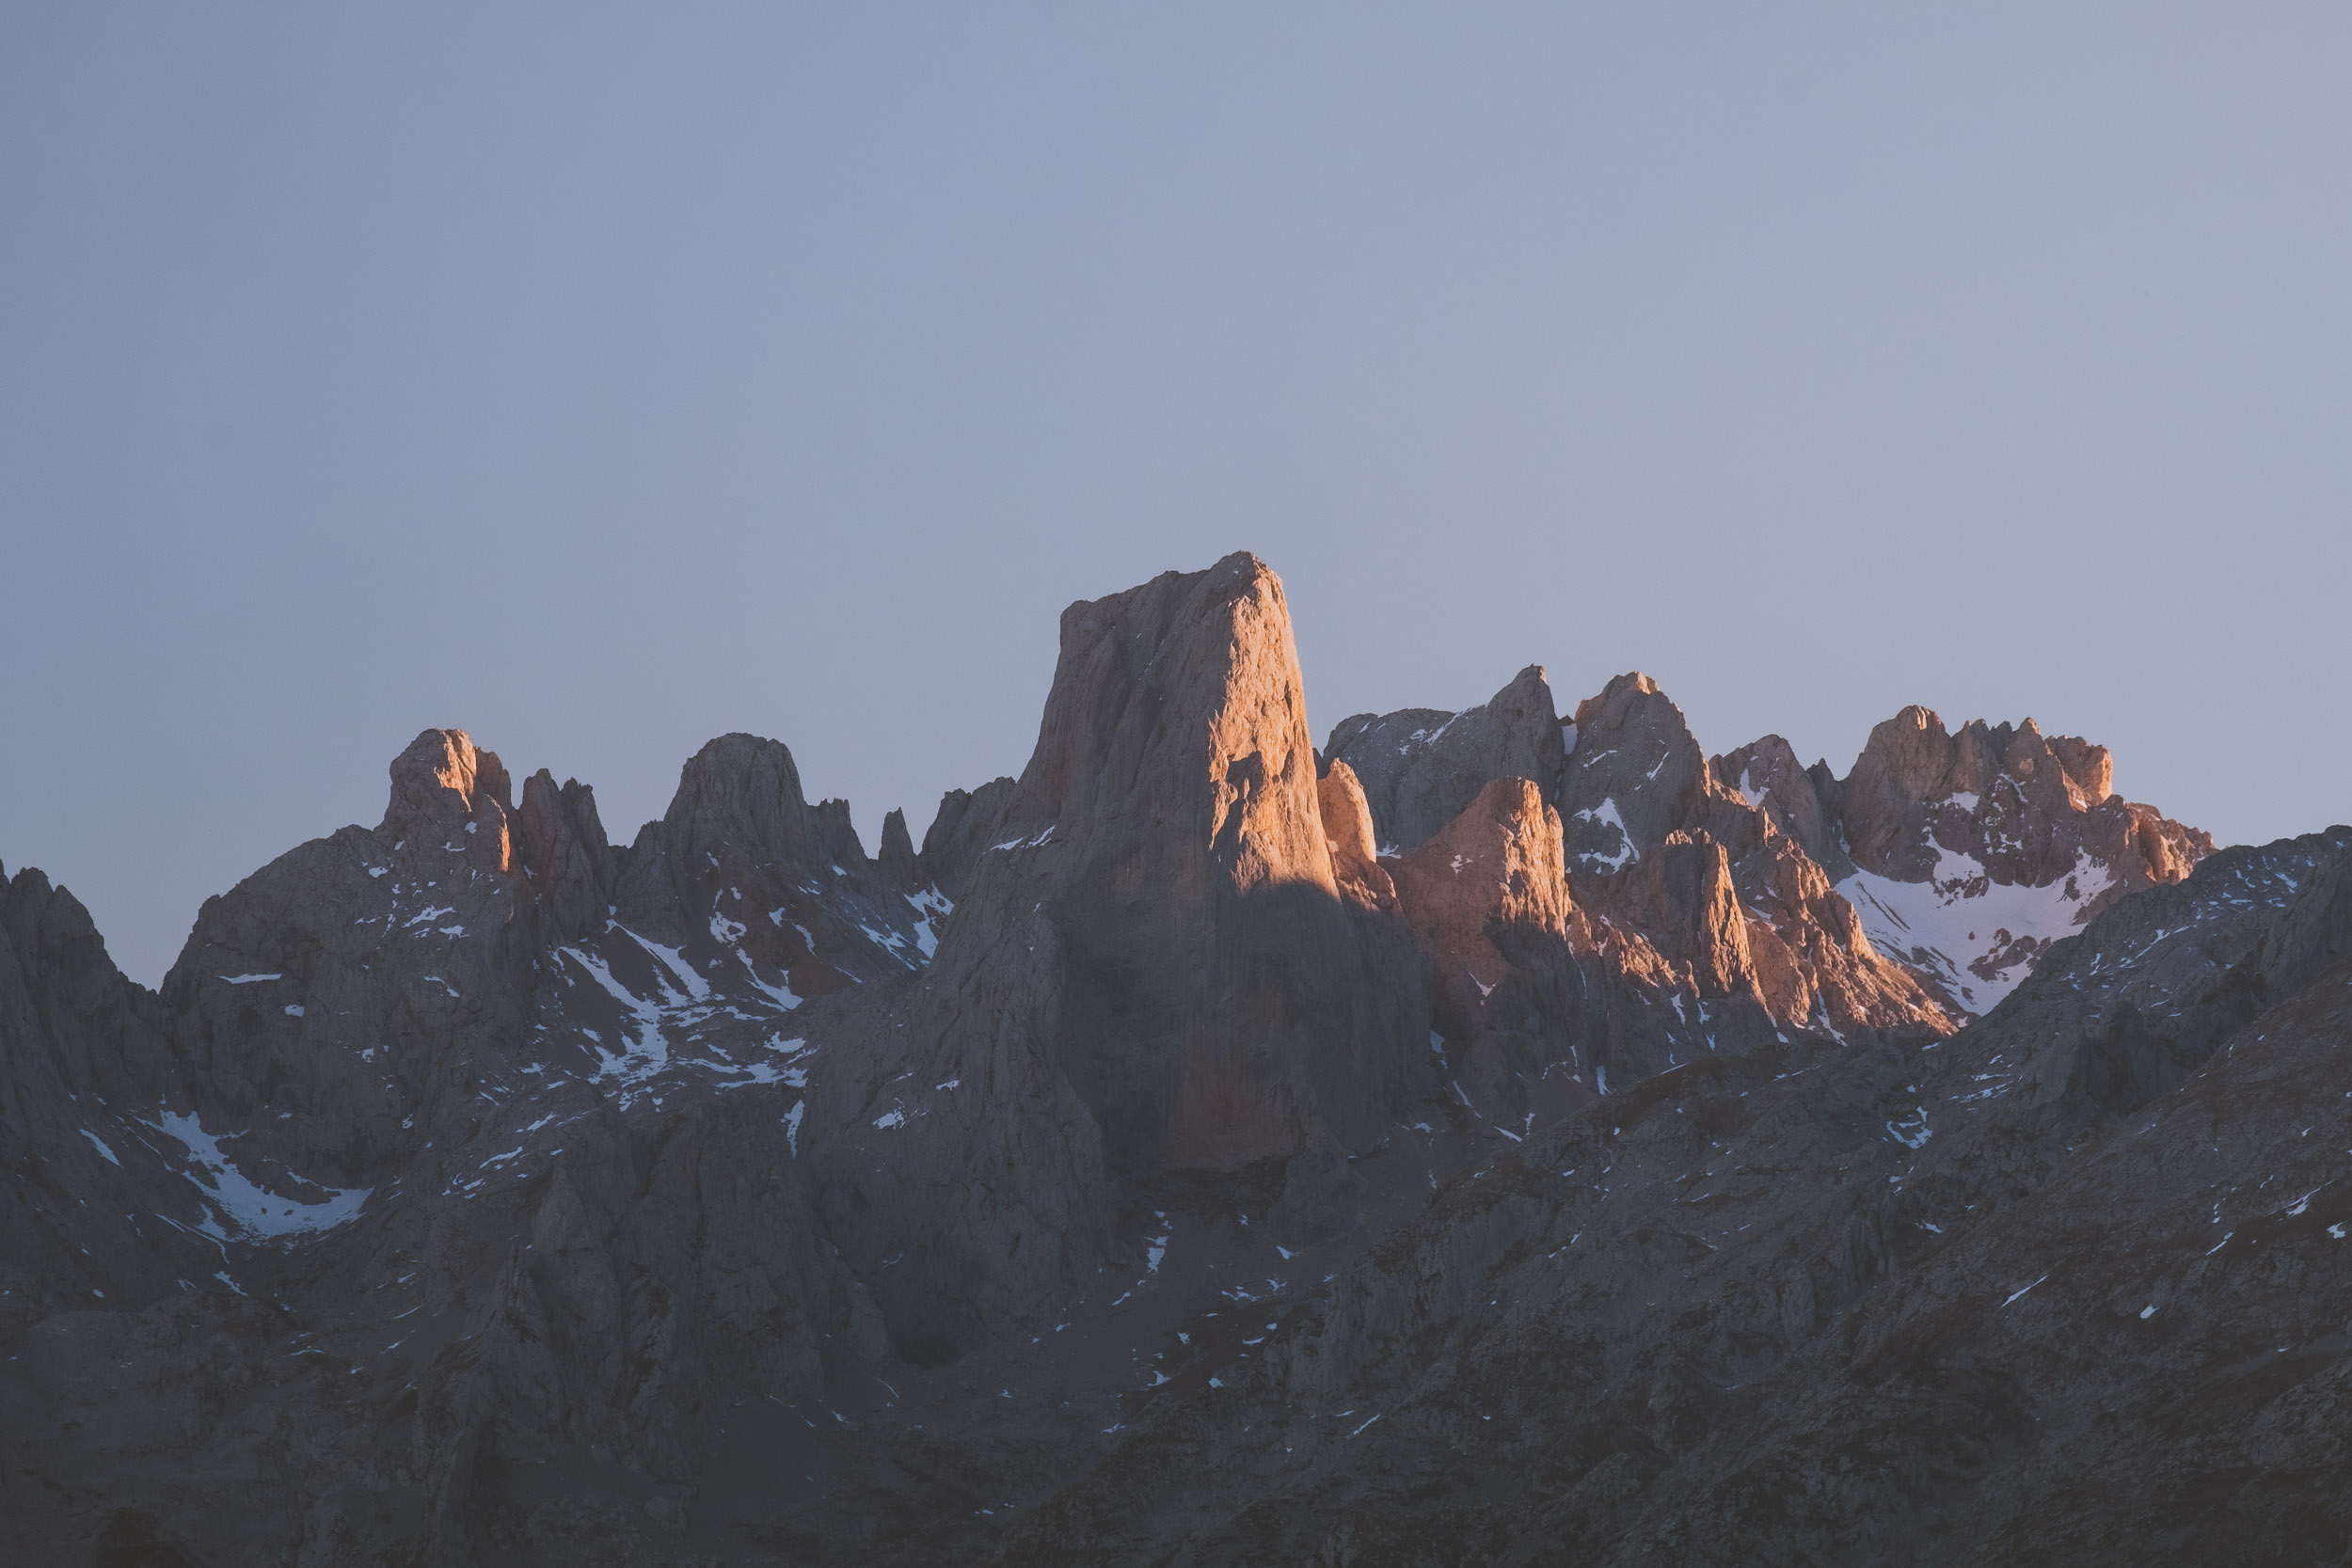 Sunset at Picos de Europa, Asturias, Spain.